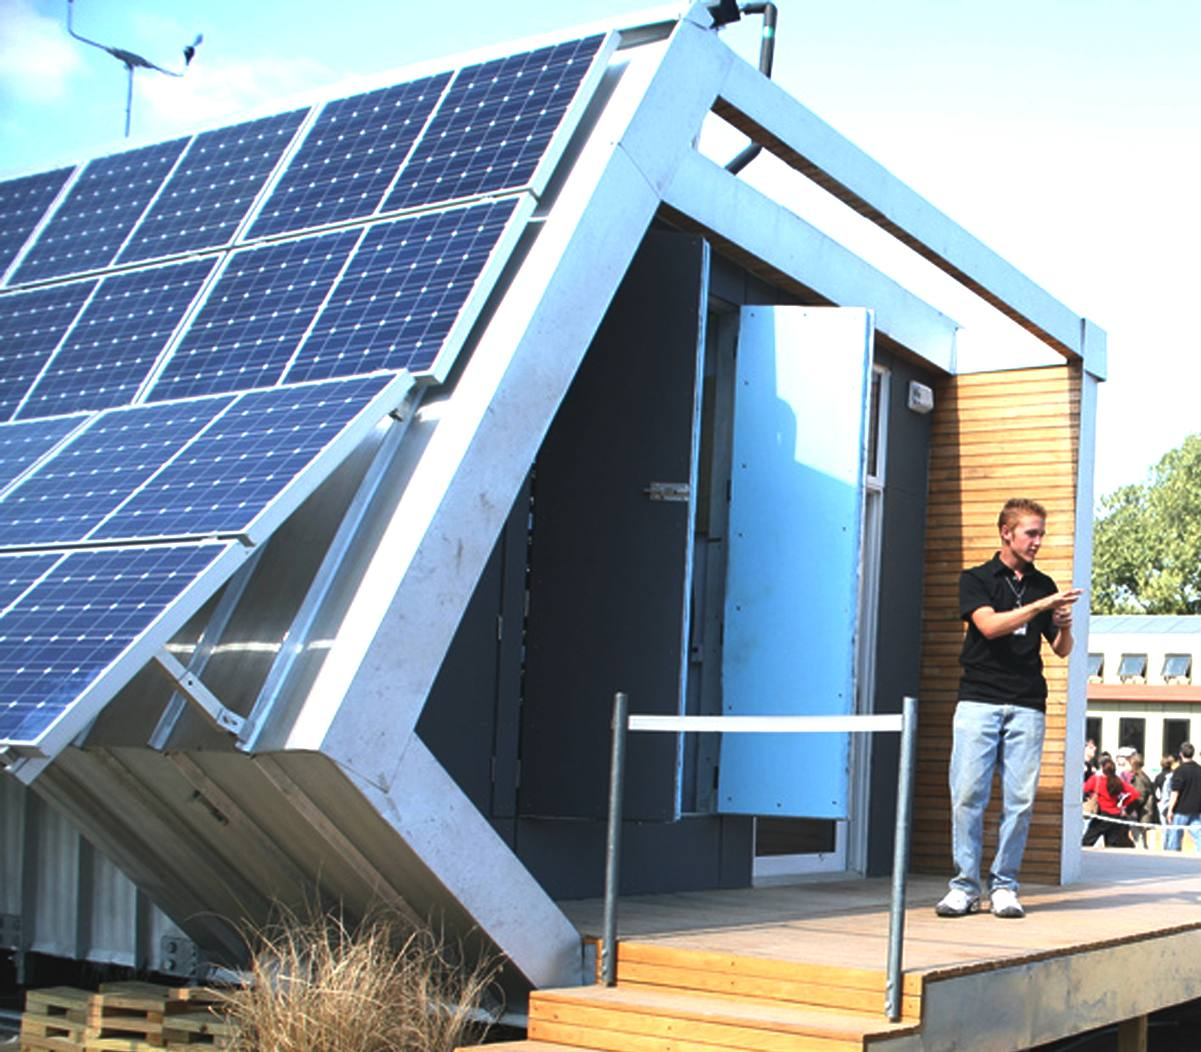 Sunstainable Houses Eco solar homes mortgages for first time buyers